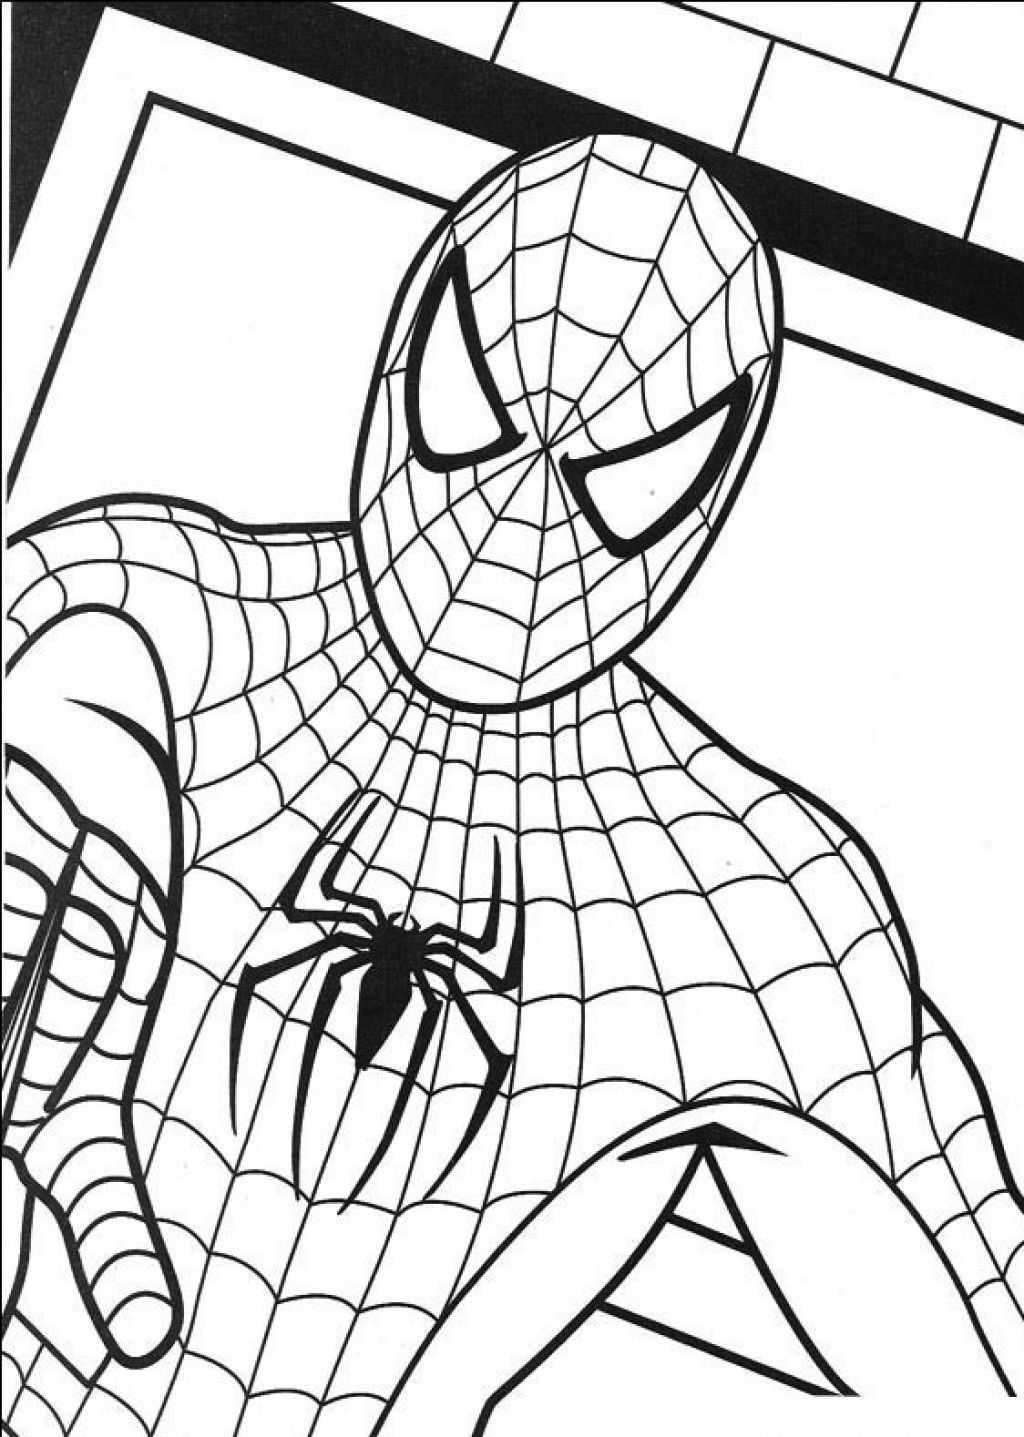 printable spiderman coloring pages get this spiderman coloring pages free printable 679154 coloring spiderman pages printable